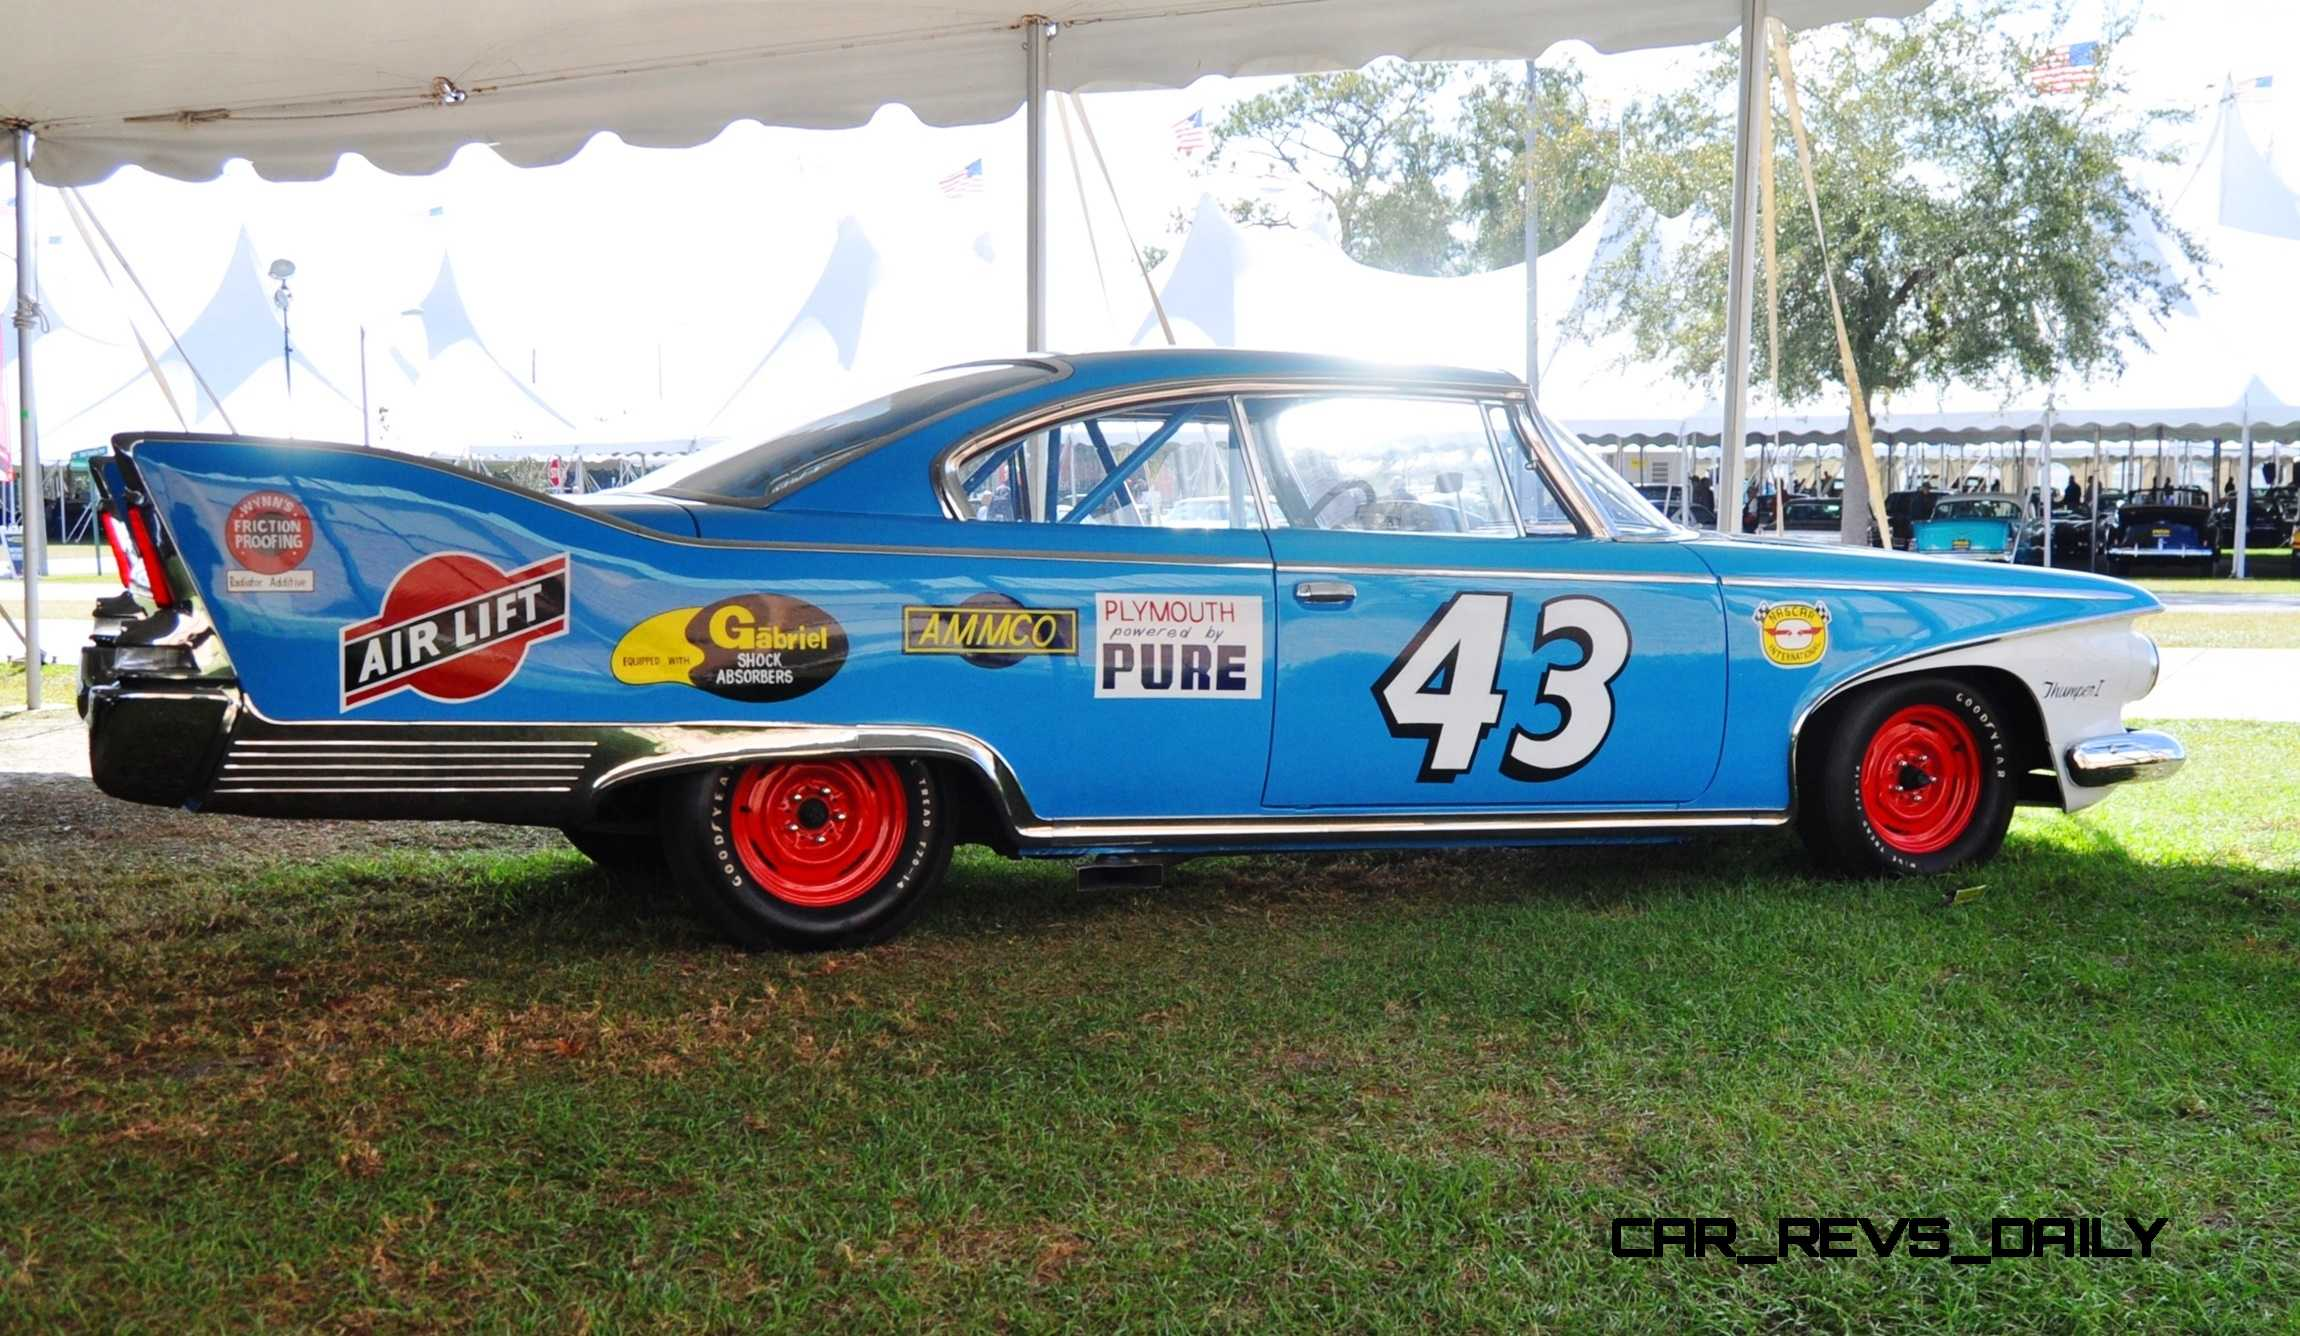 76 1960 Plymouths Plymouth Cars 1965 Images From Savoy Sedan Fury Nascar 16